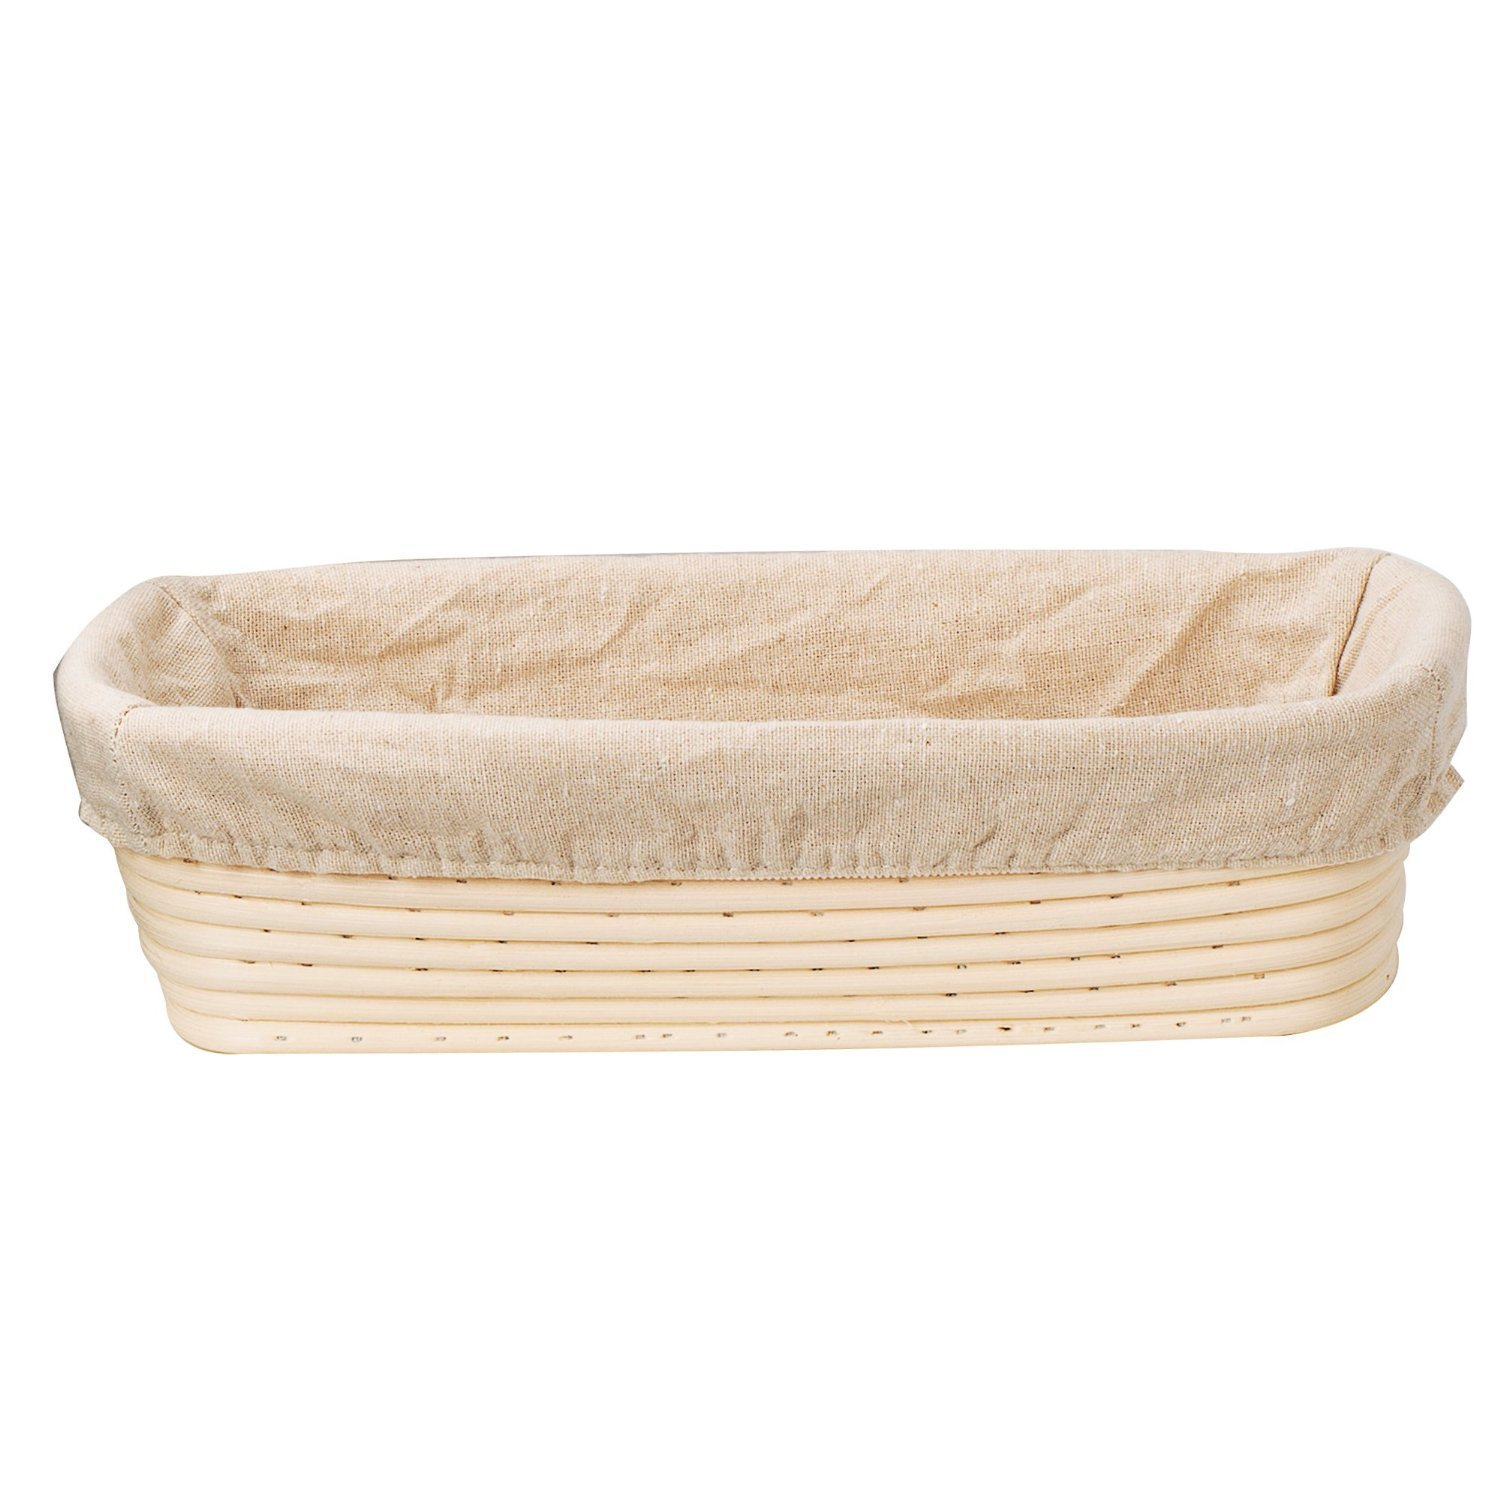 KOOTIPS 9 inch Oval Shaped Banneton Brotform Bread Dough Proofing Rising Rattan Basket & Liner Combo